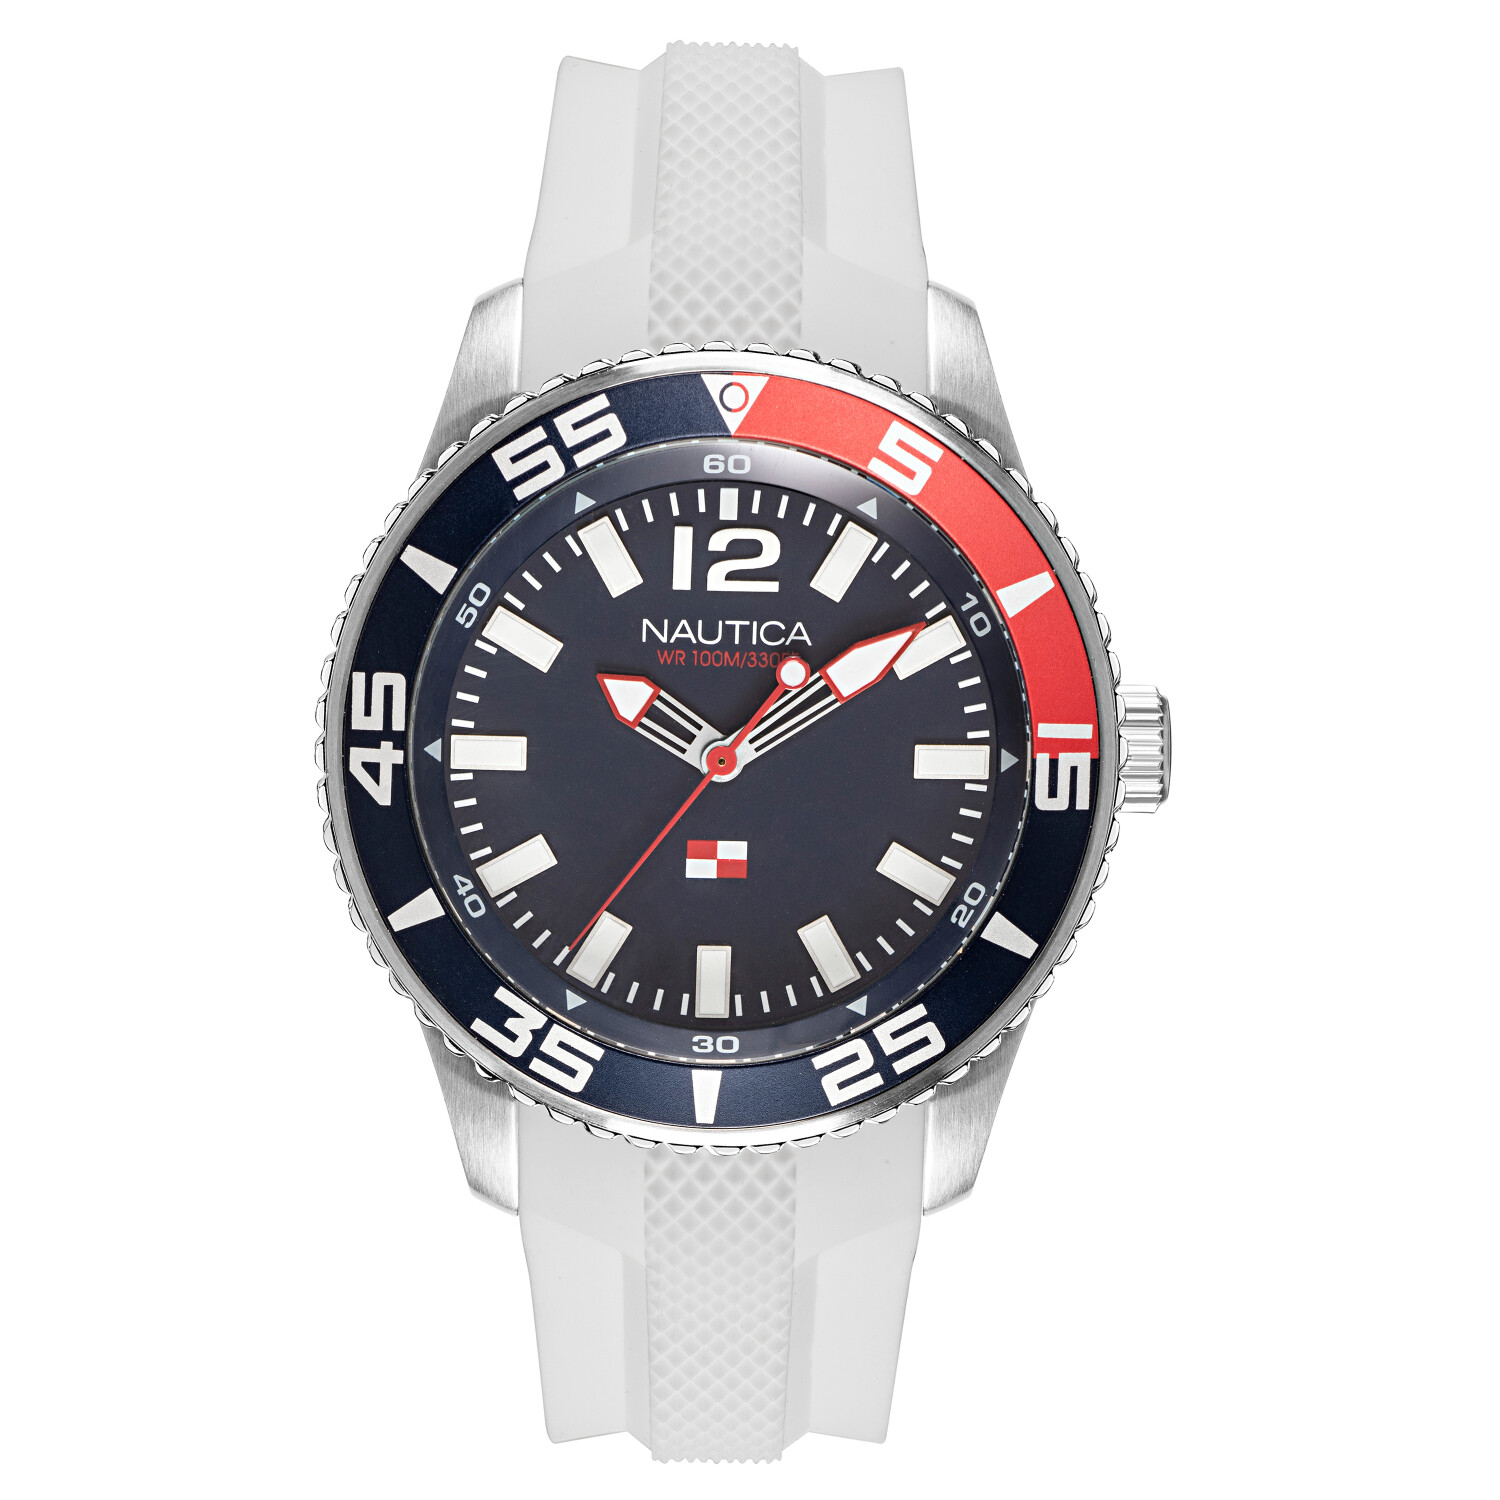 Nautica Watch NAPPBP905 Pacific Beach, Analog, Water Resistant, Luminous Hands, Silicone Band, Buckle Clasp, Blue